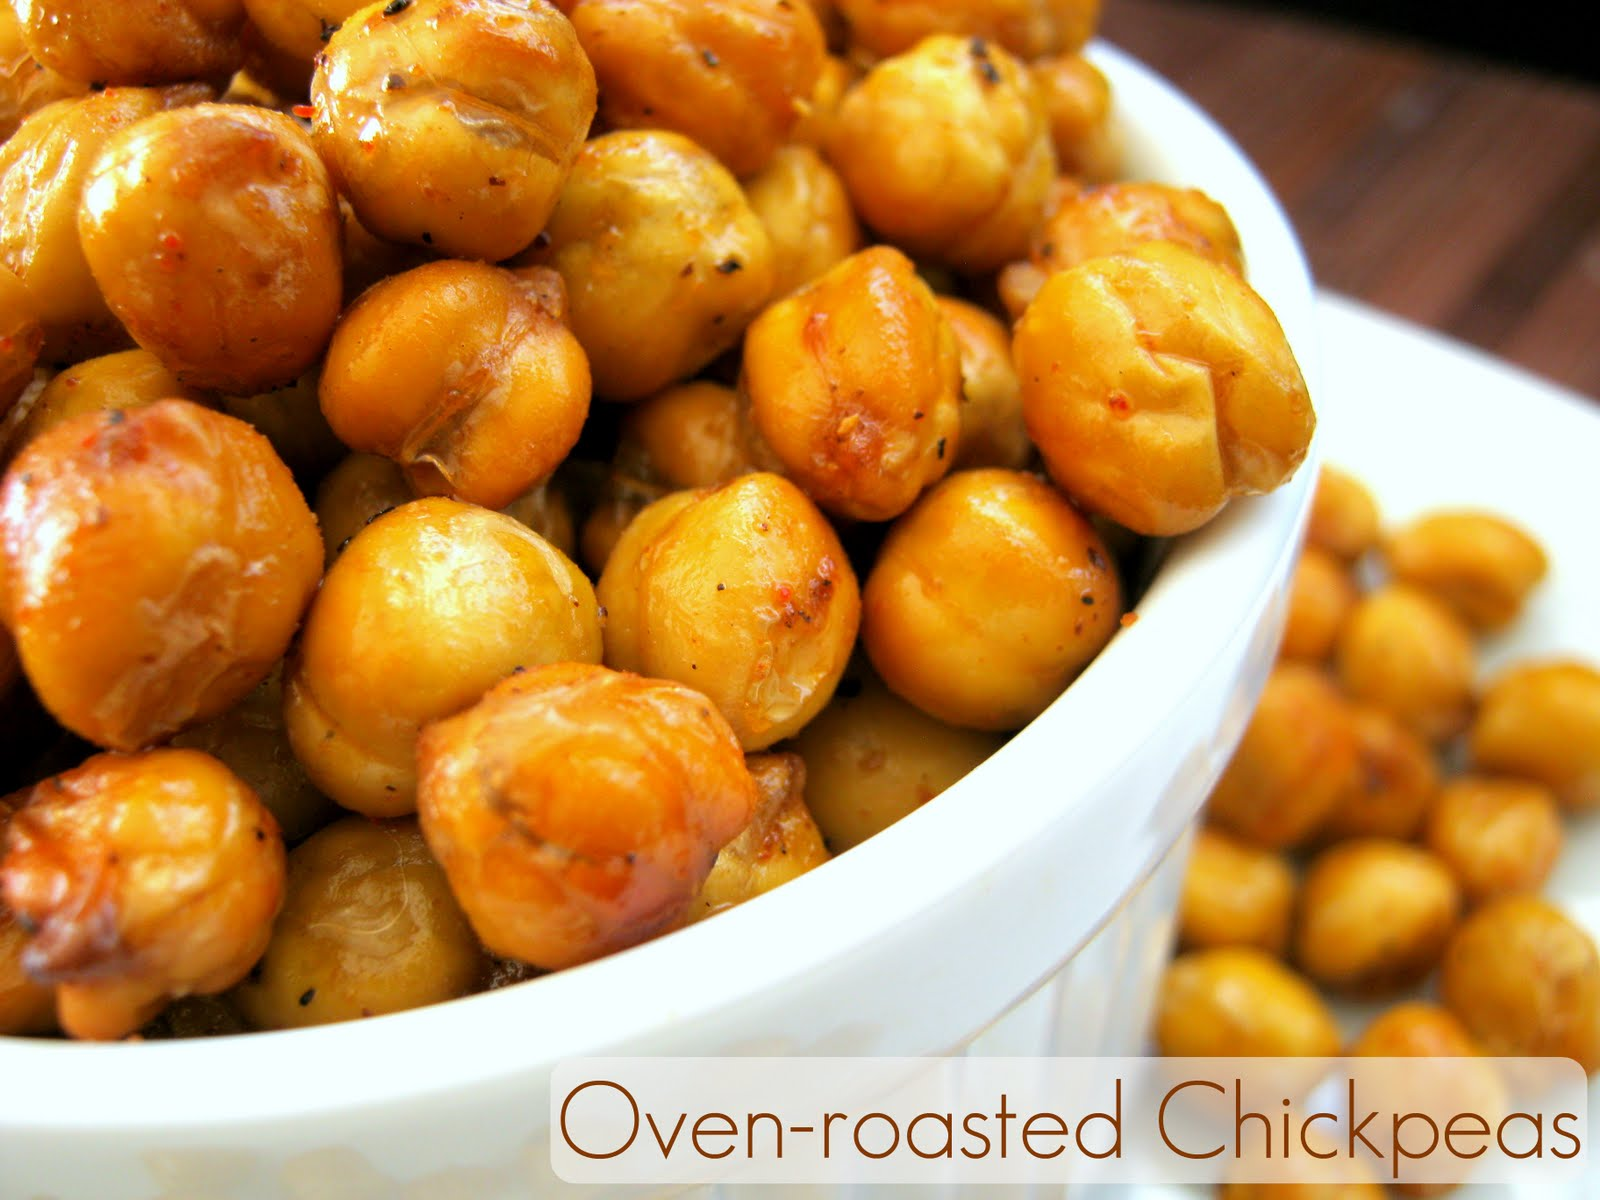 Fried channa chickpeas made healthier alicas pepperpot oven roasted chickpeas forumfinder Gallery